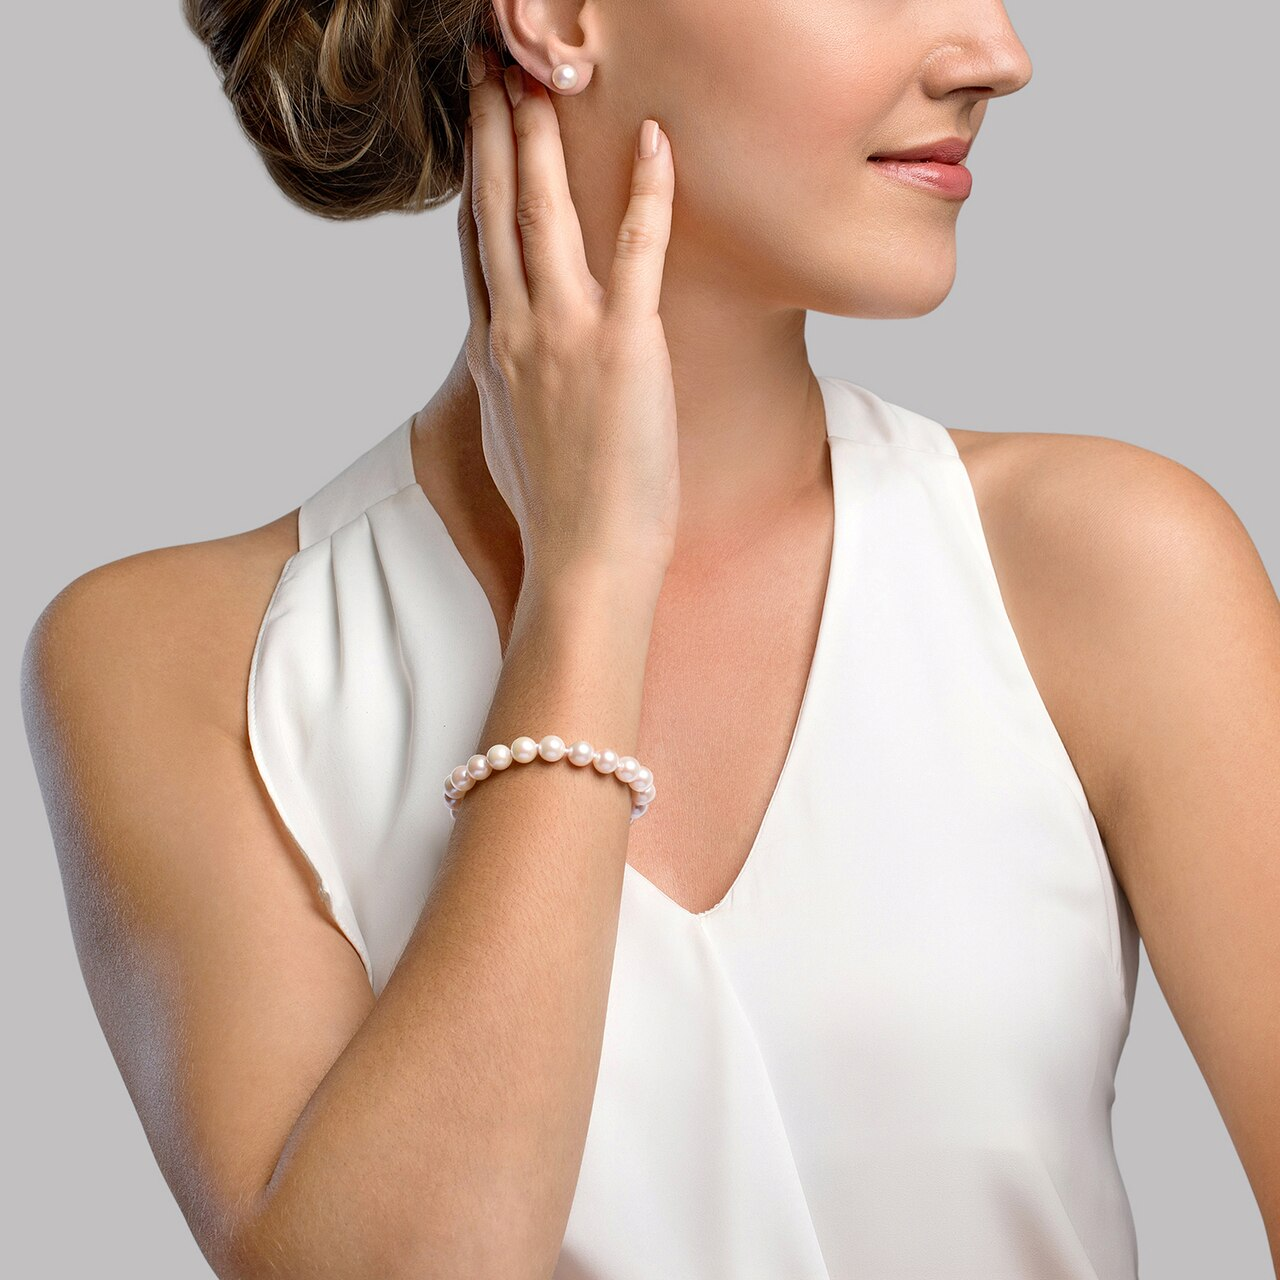 This elegant bracelet features 7.5-8.0mm Japanese Akoya pearls, handpicked for their luminous luster